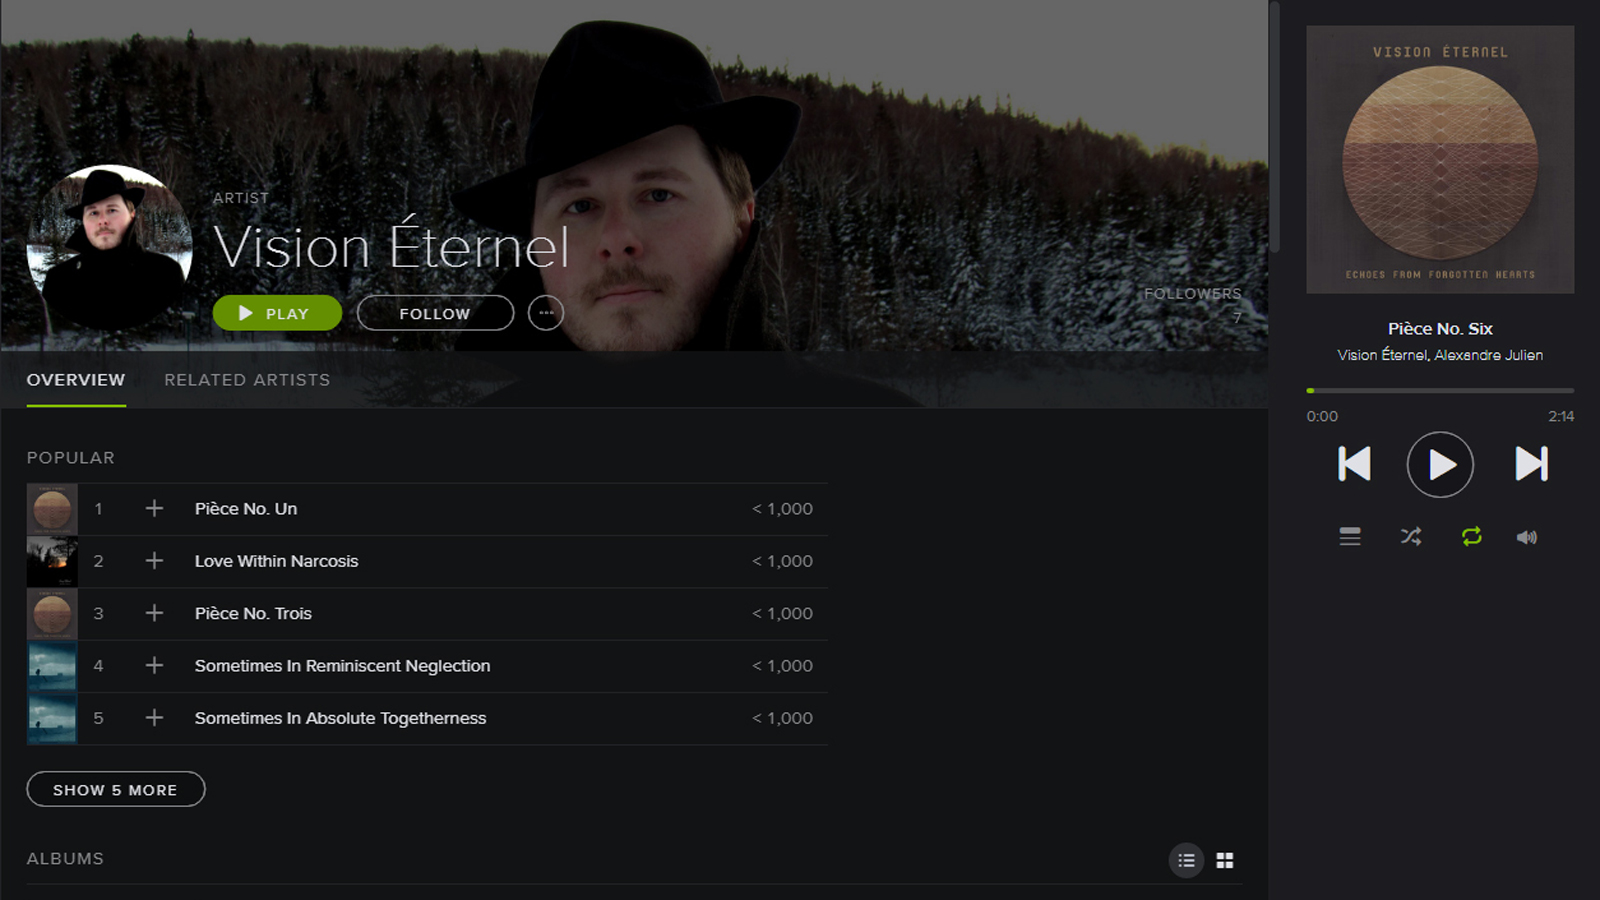 Follow Vision Éternel On Spotify